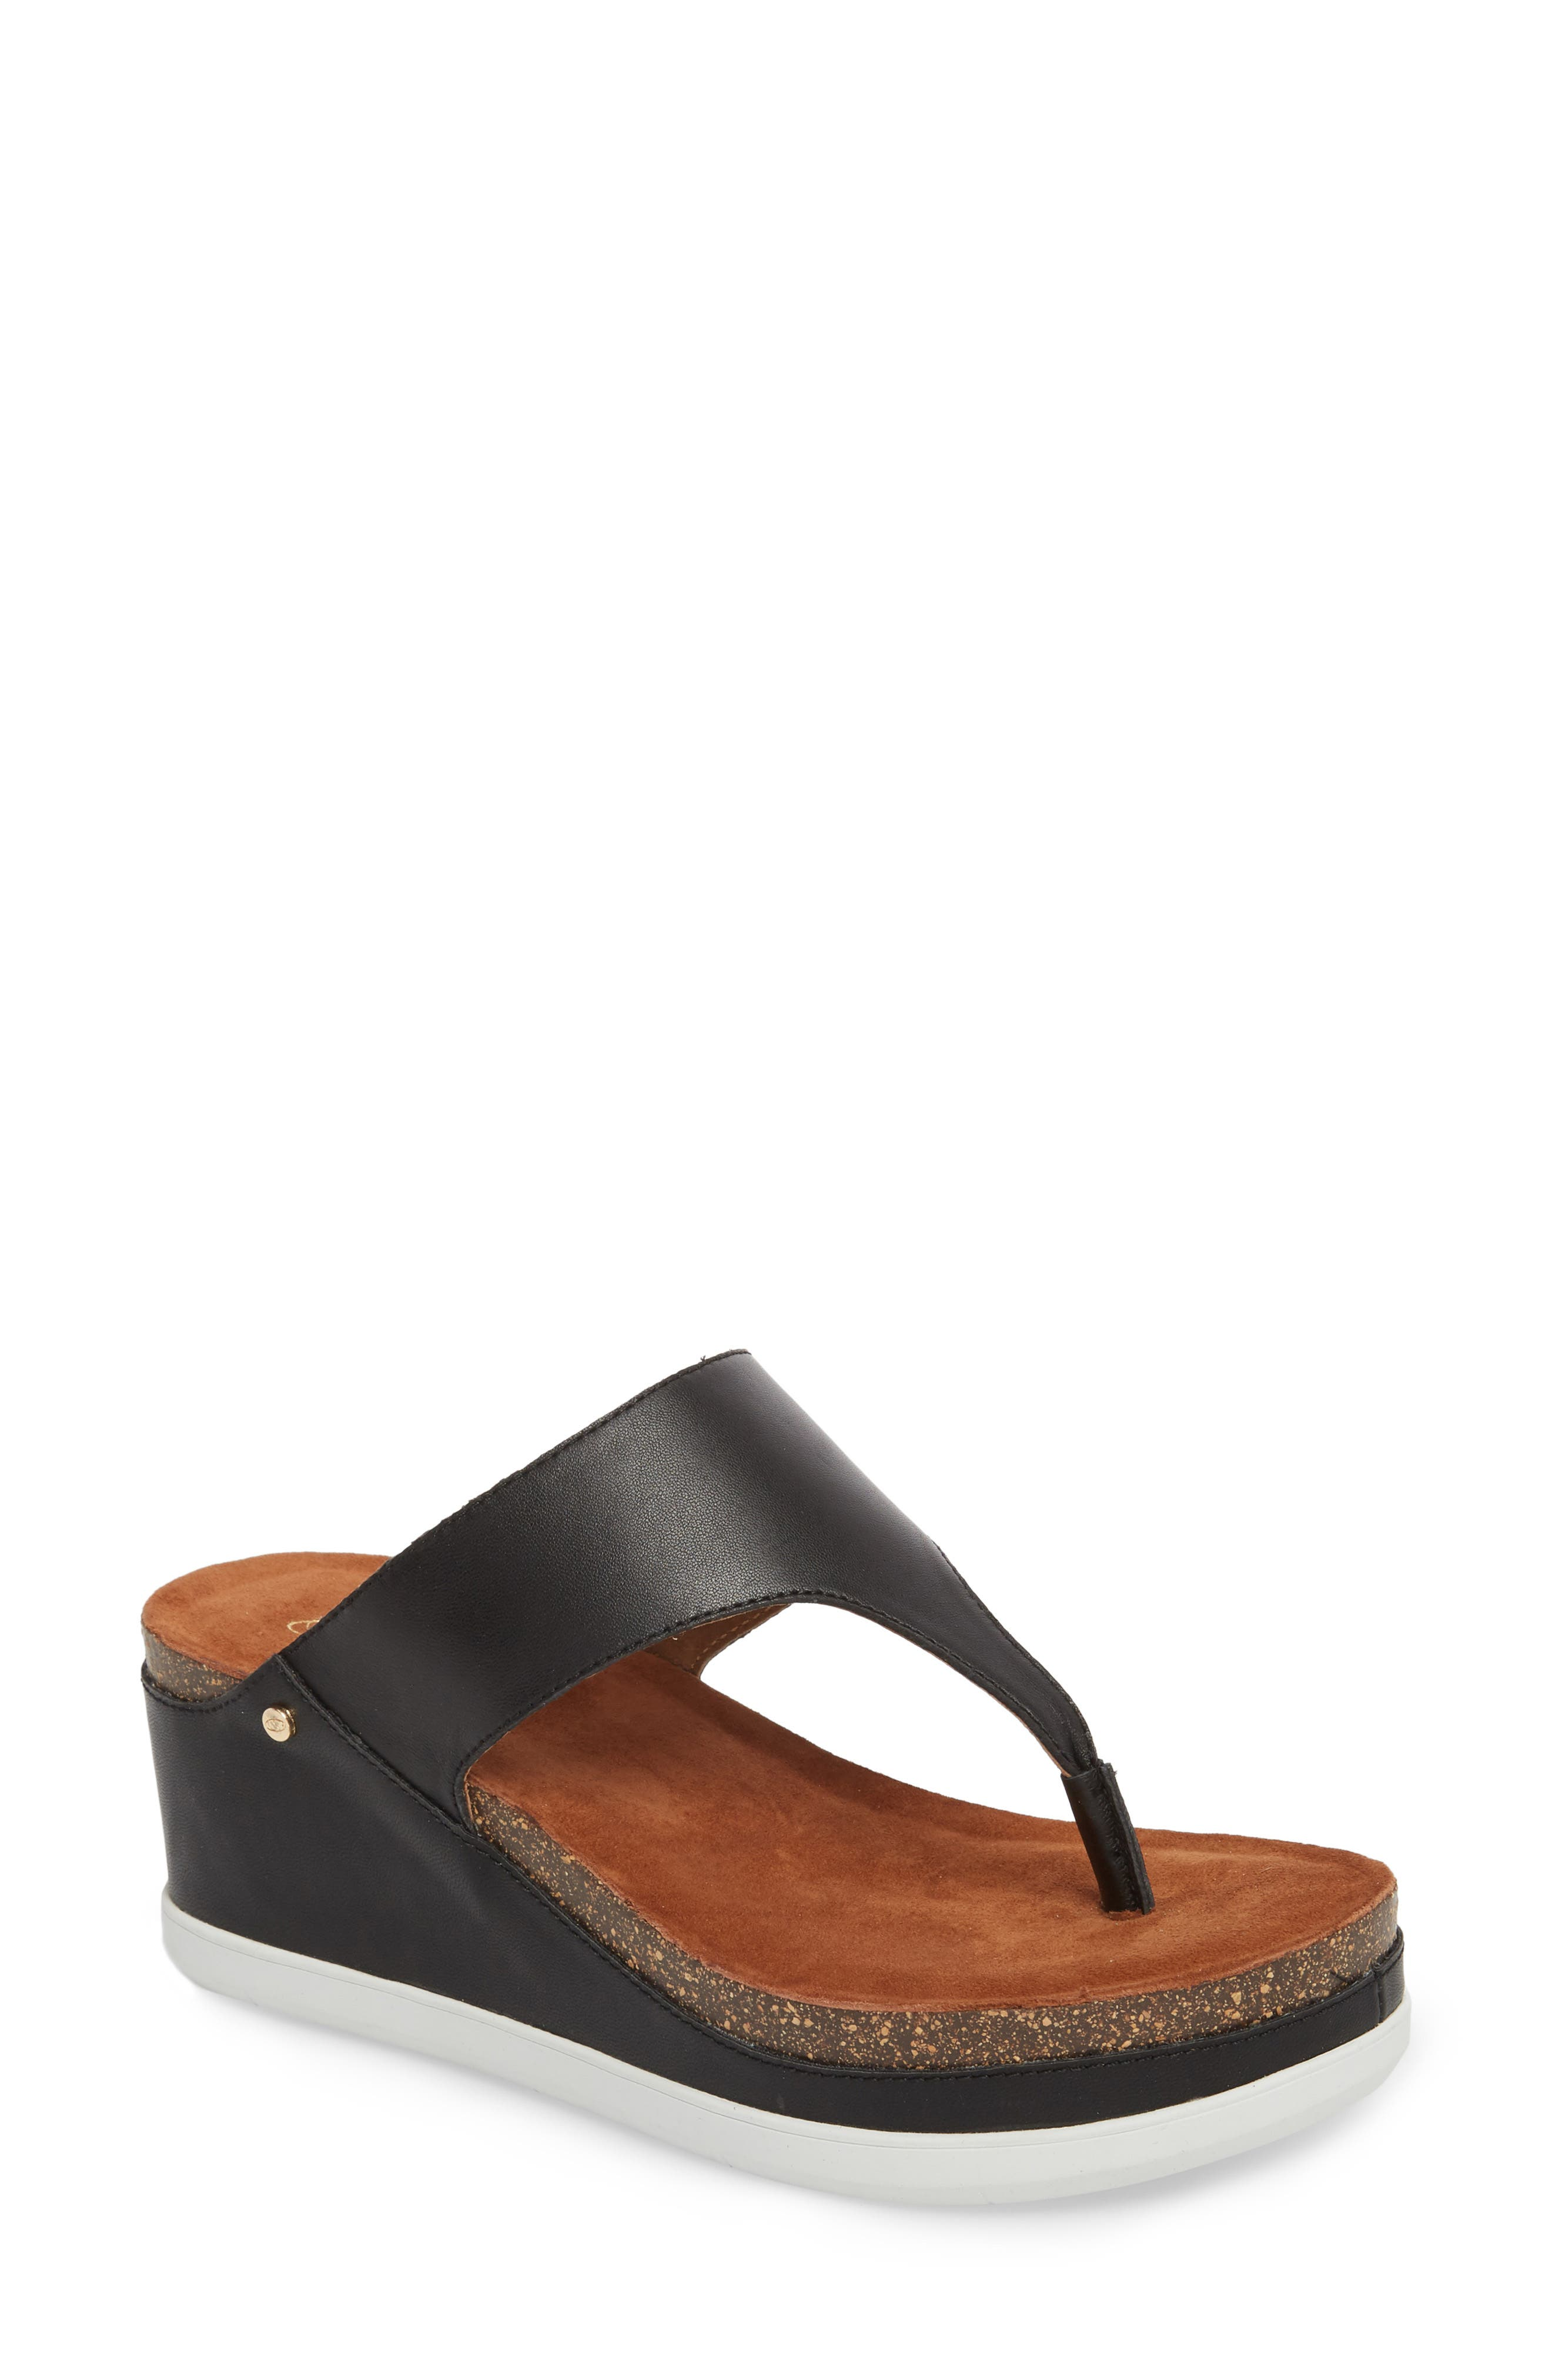 Paige Wedge Mule,                         Main,                         color, BLACK LEATHER